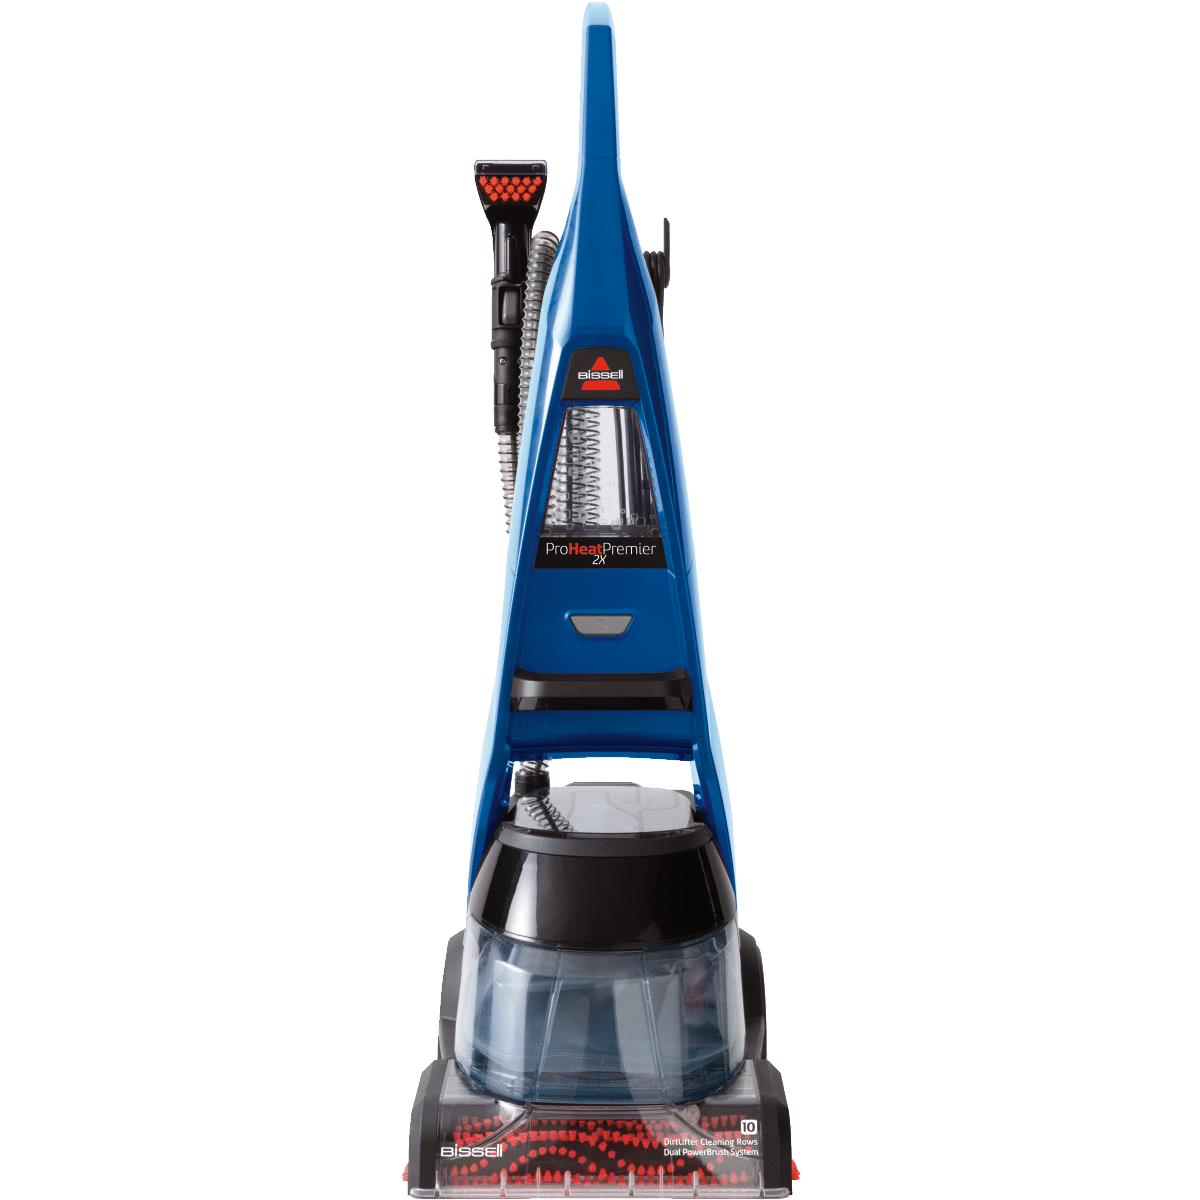 Bissell ProHeat 2X Premier Carpet Cleaner, Blue